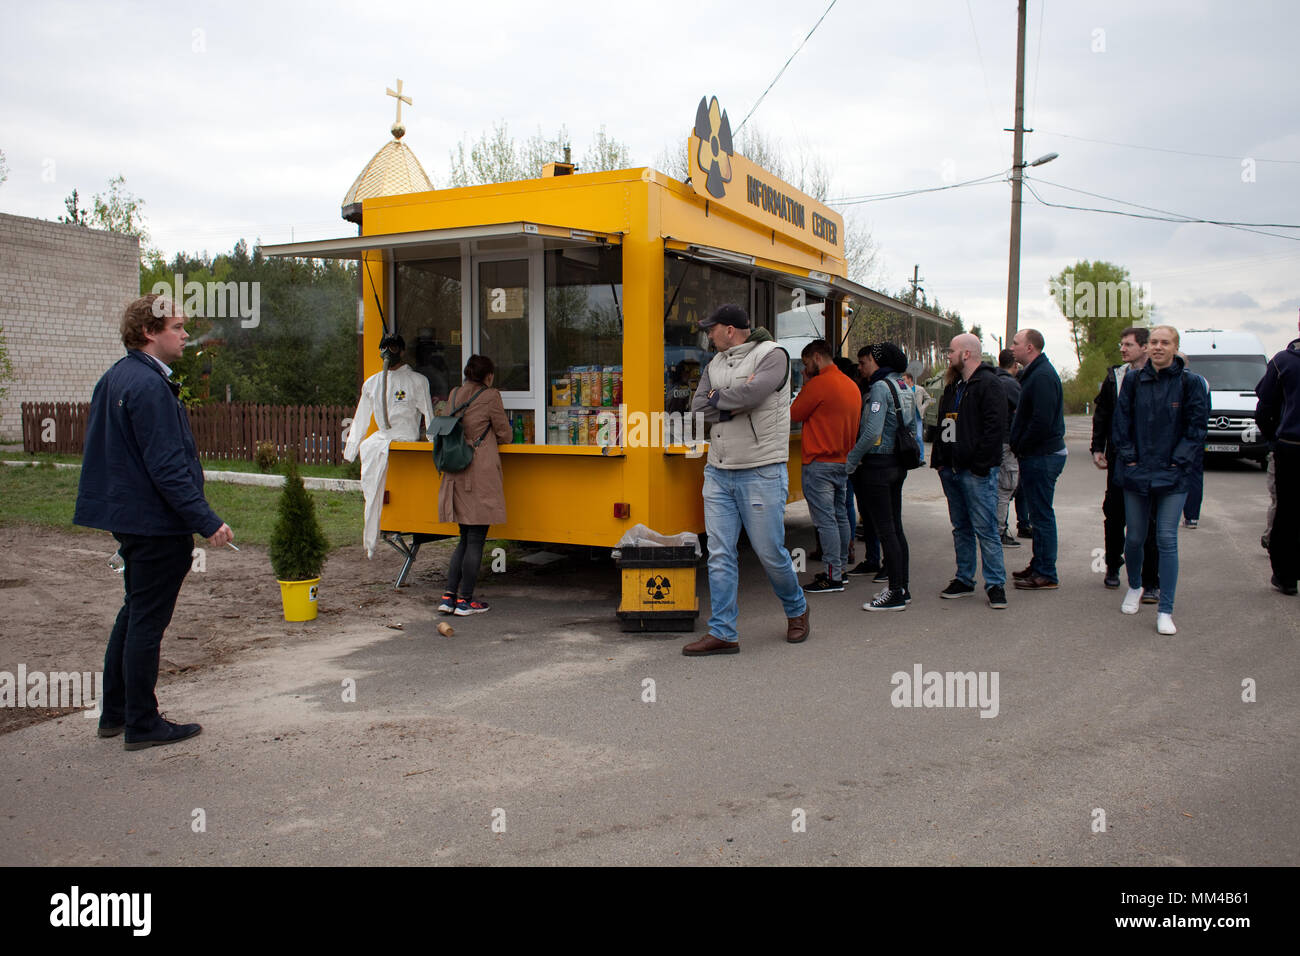 Visitors at entrance checkpoint to Chernobyl Exclusion Zone, Ukraine - Stock Image